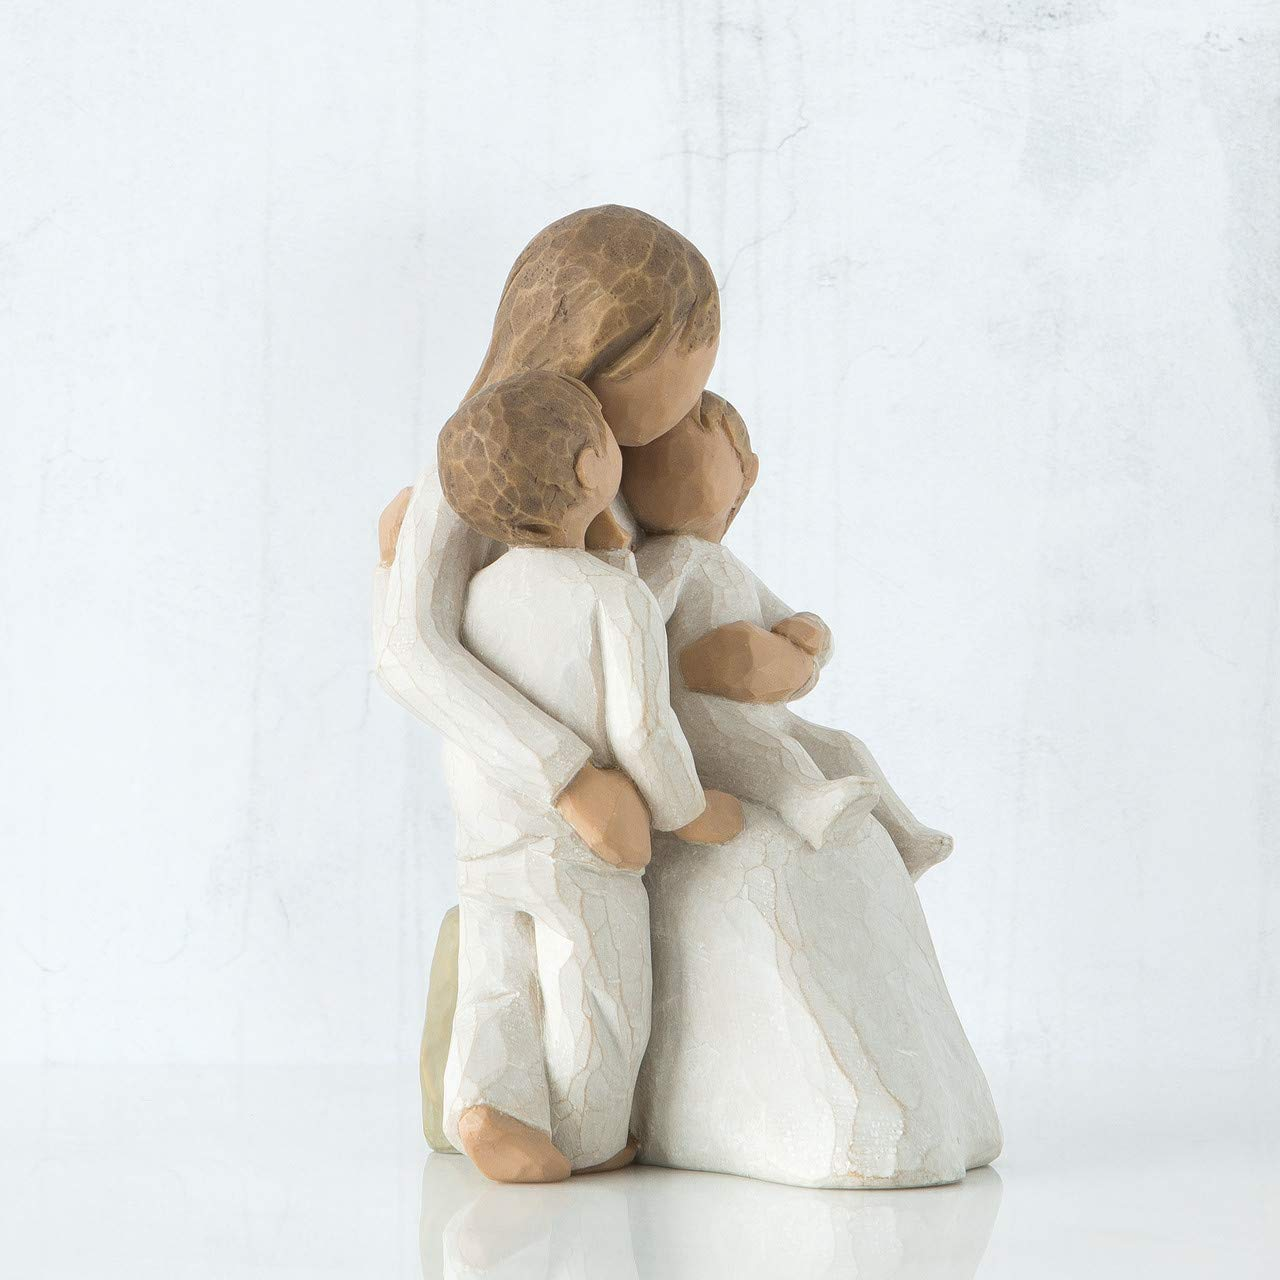 Willow Tree Quietly sculpted hand-painted figure